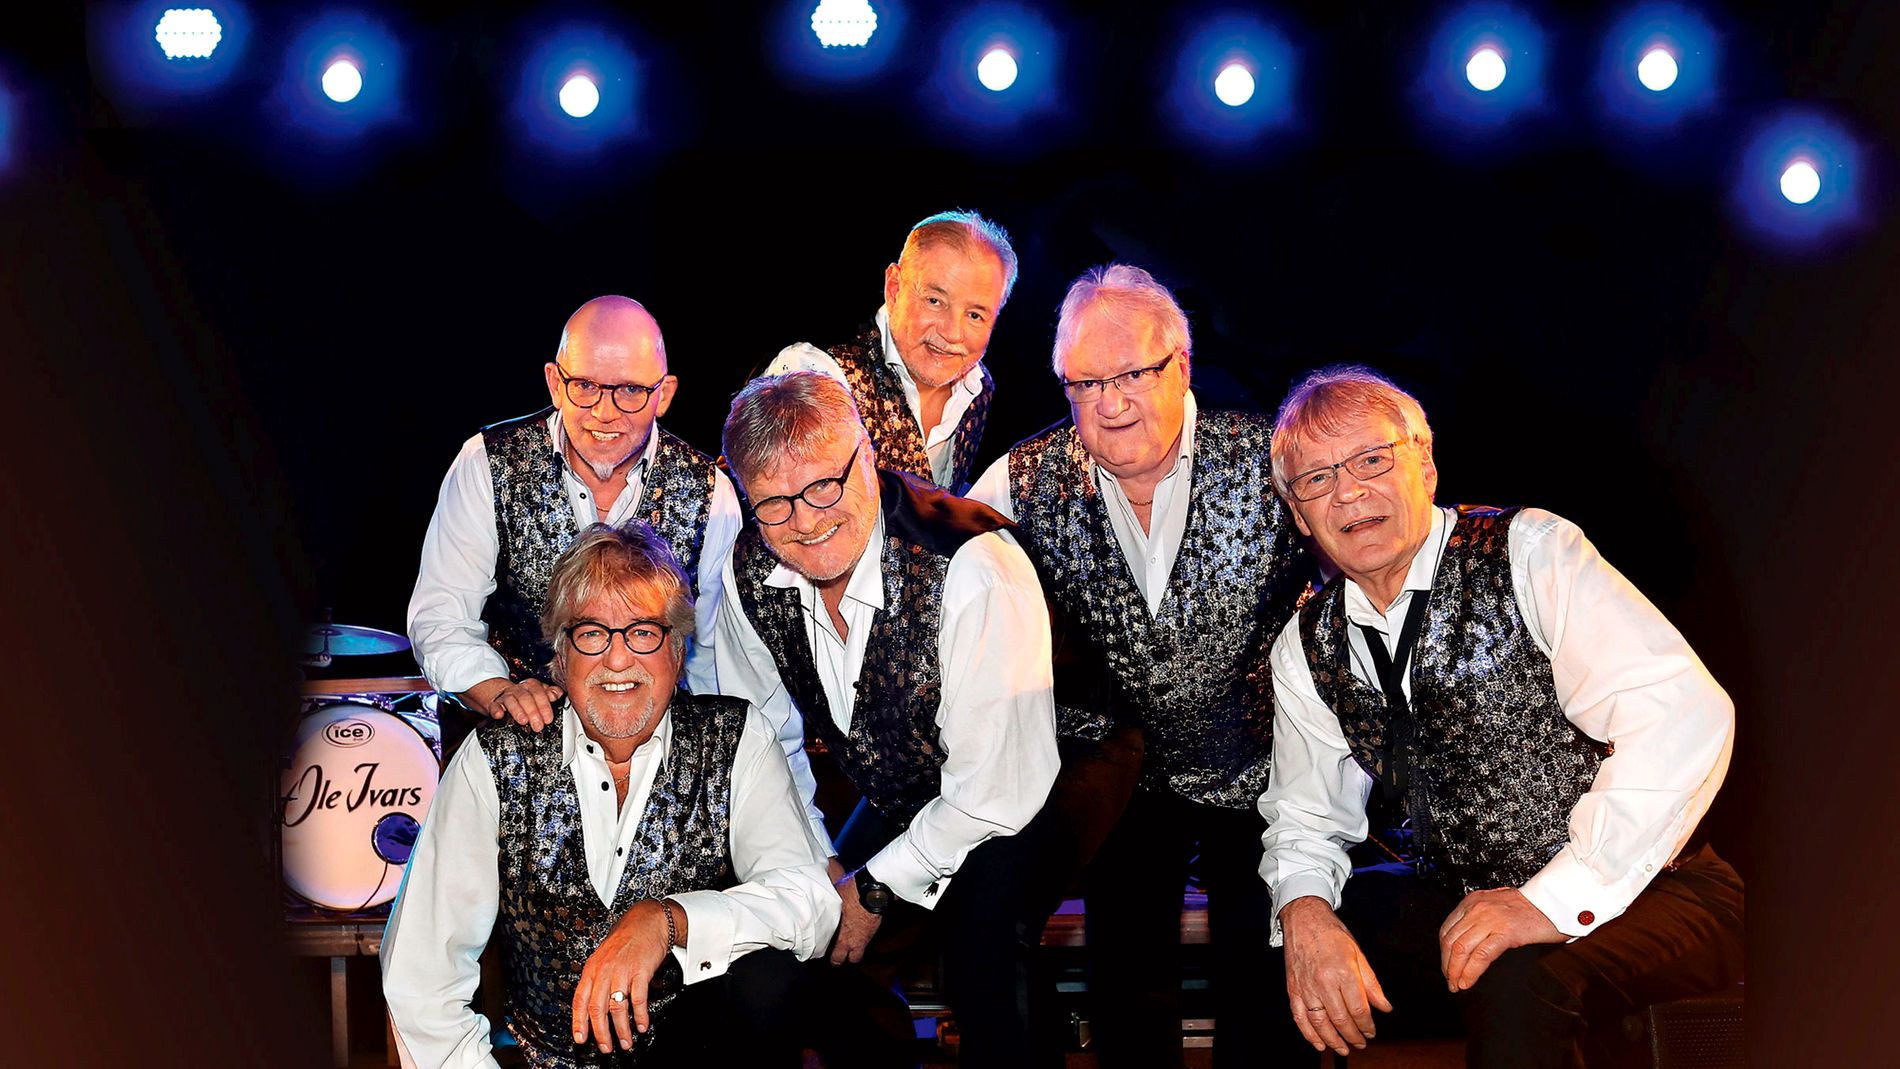 Ole Ivars - the band will appear in 2018, before Tore Halvorsen, sitting in front of the left, says thank you for 30 years.